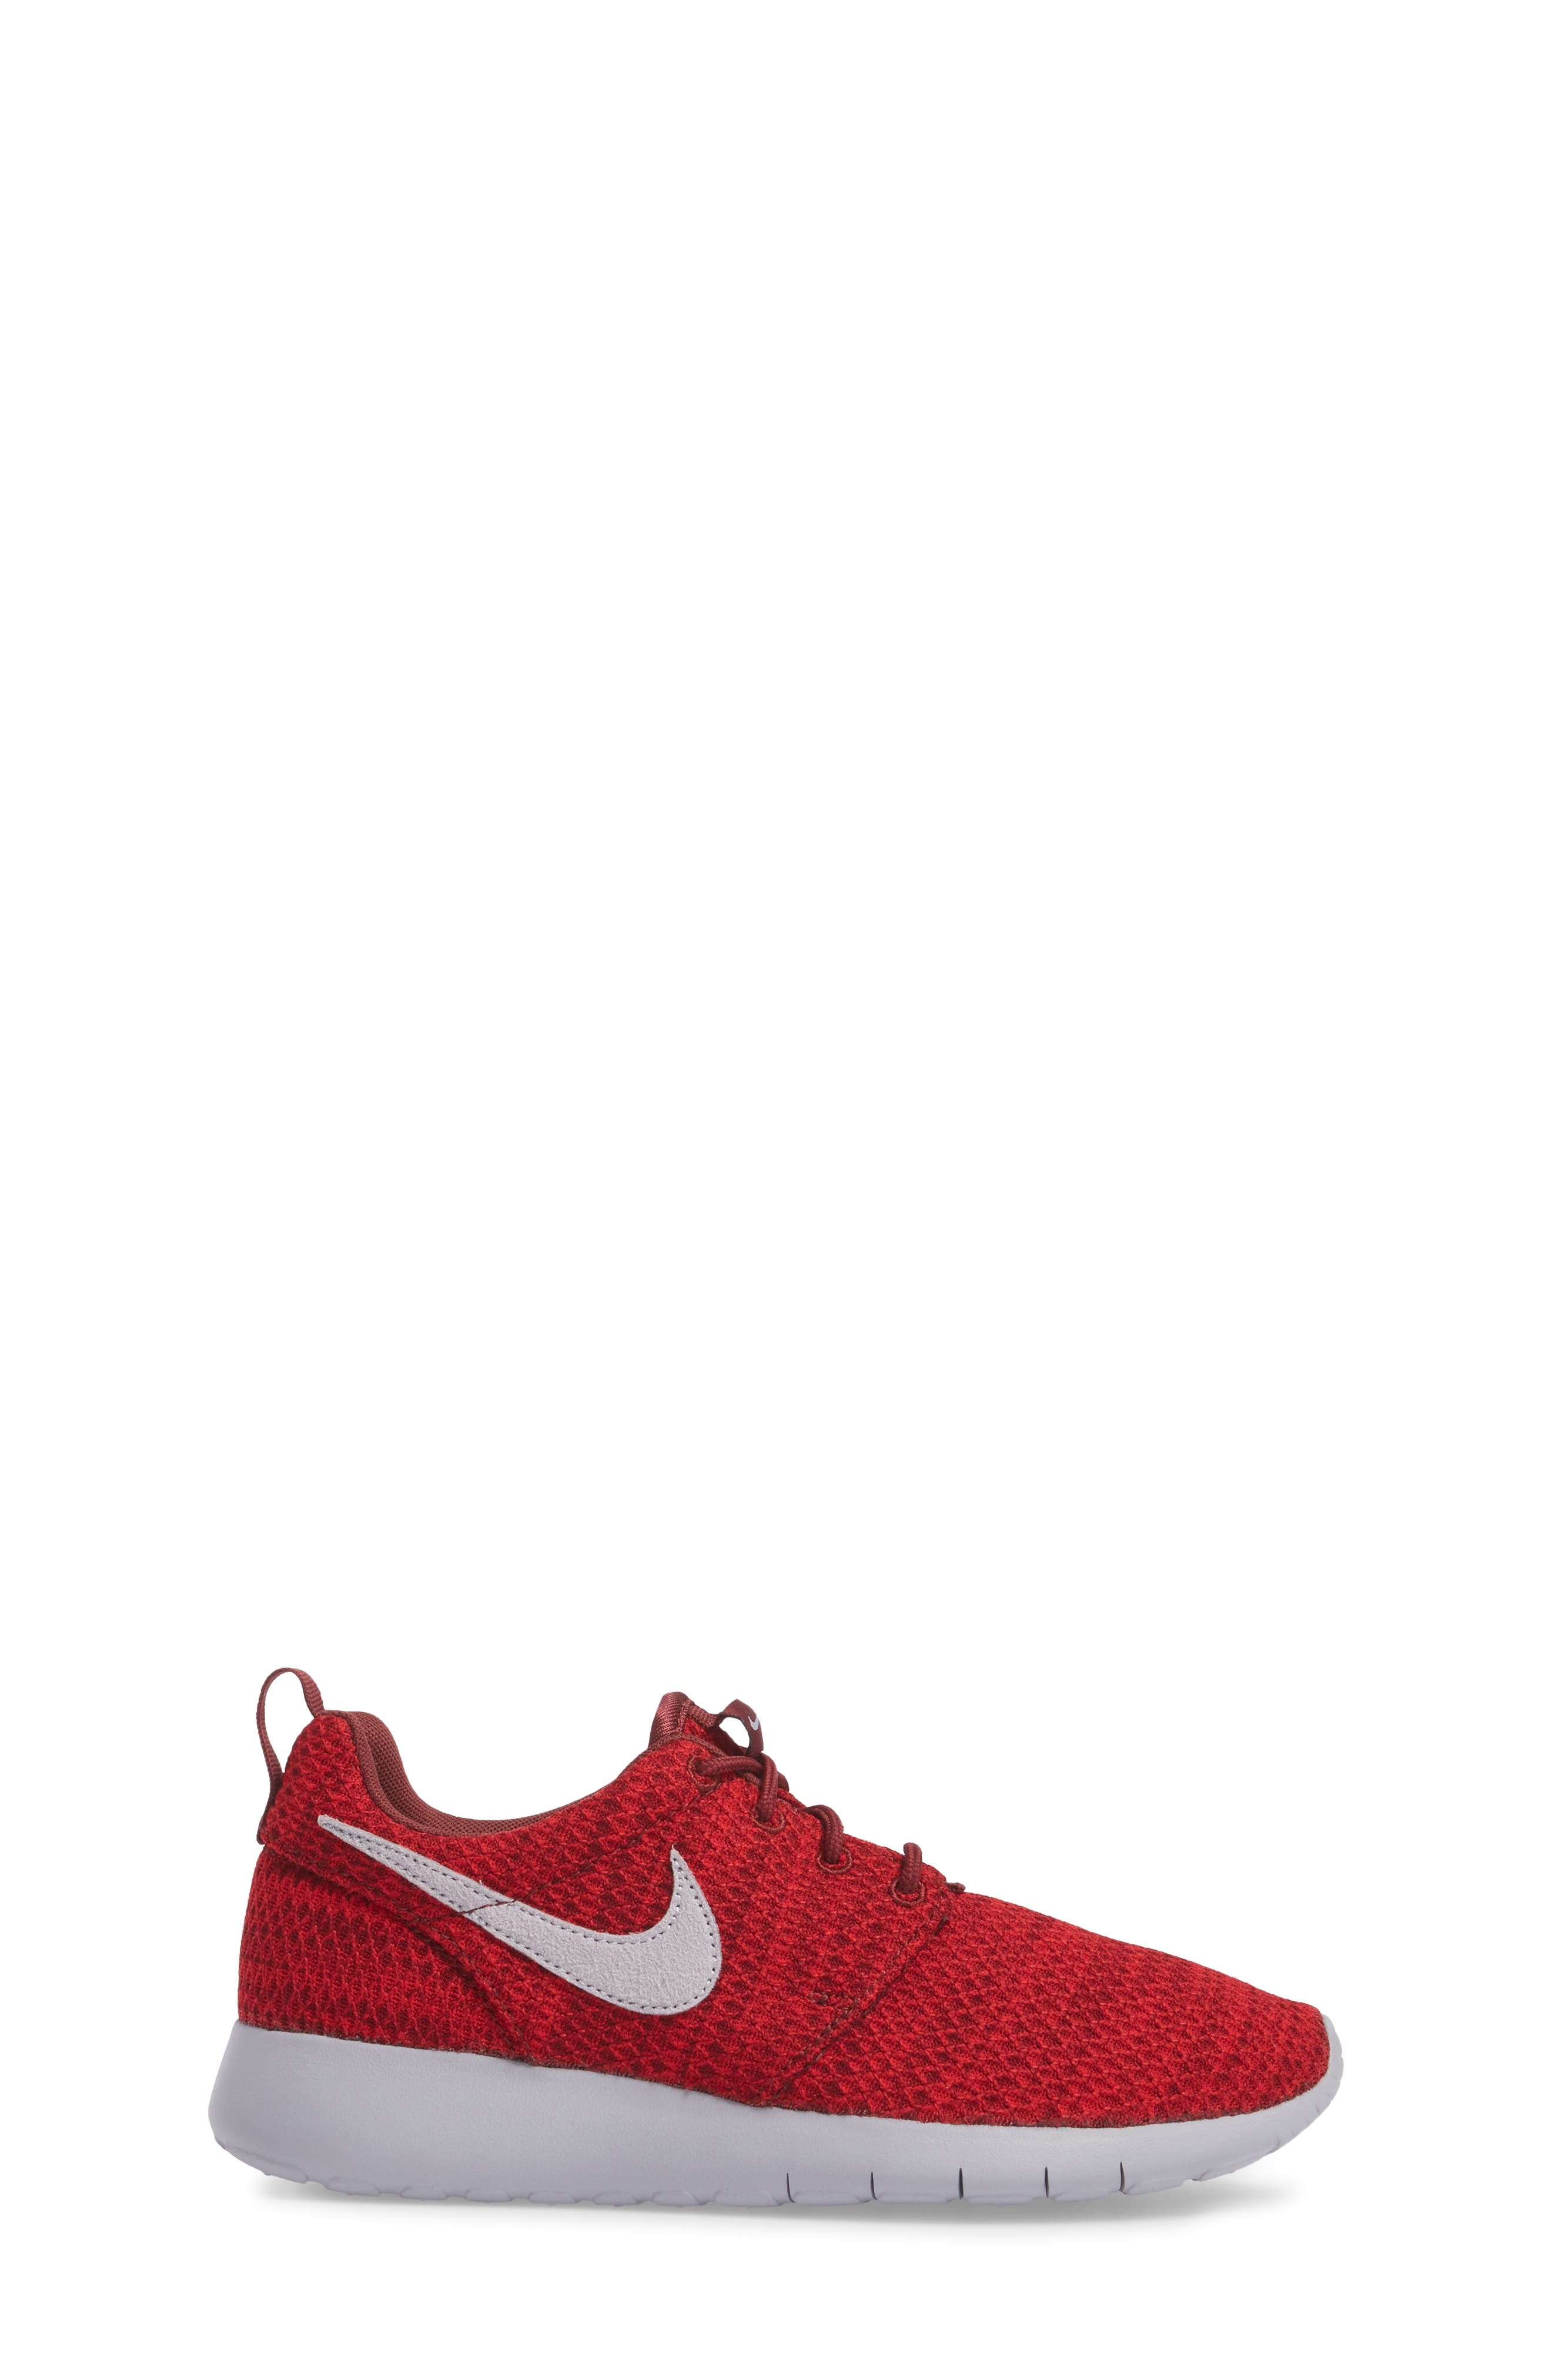 'Roshe Run' Sneaker,                             Alternate thumbnail 145, color,